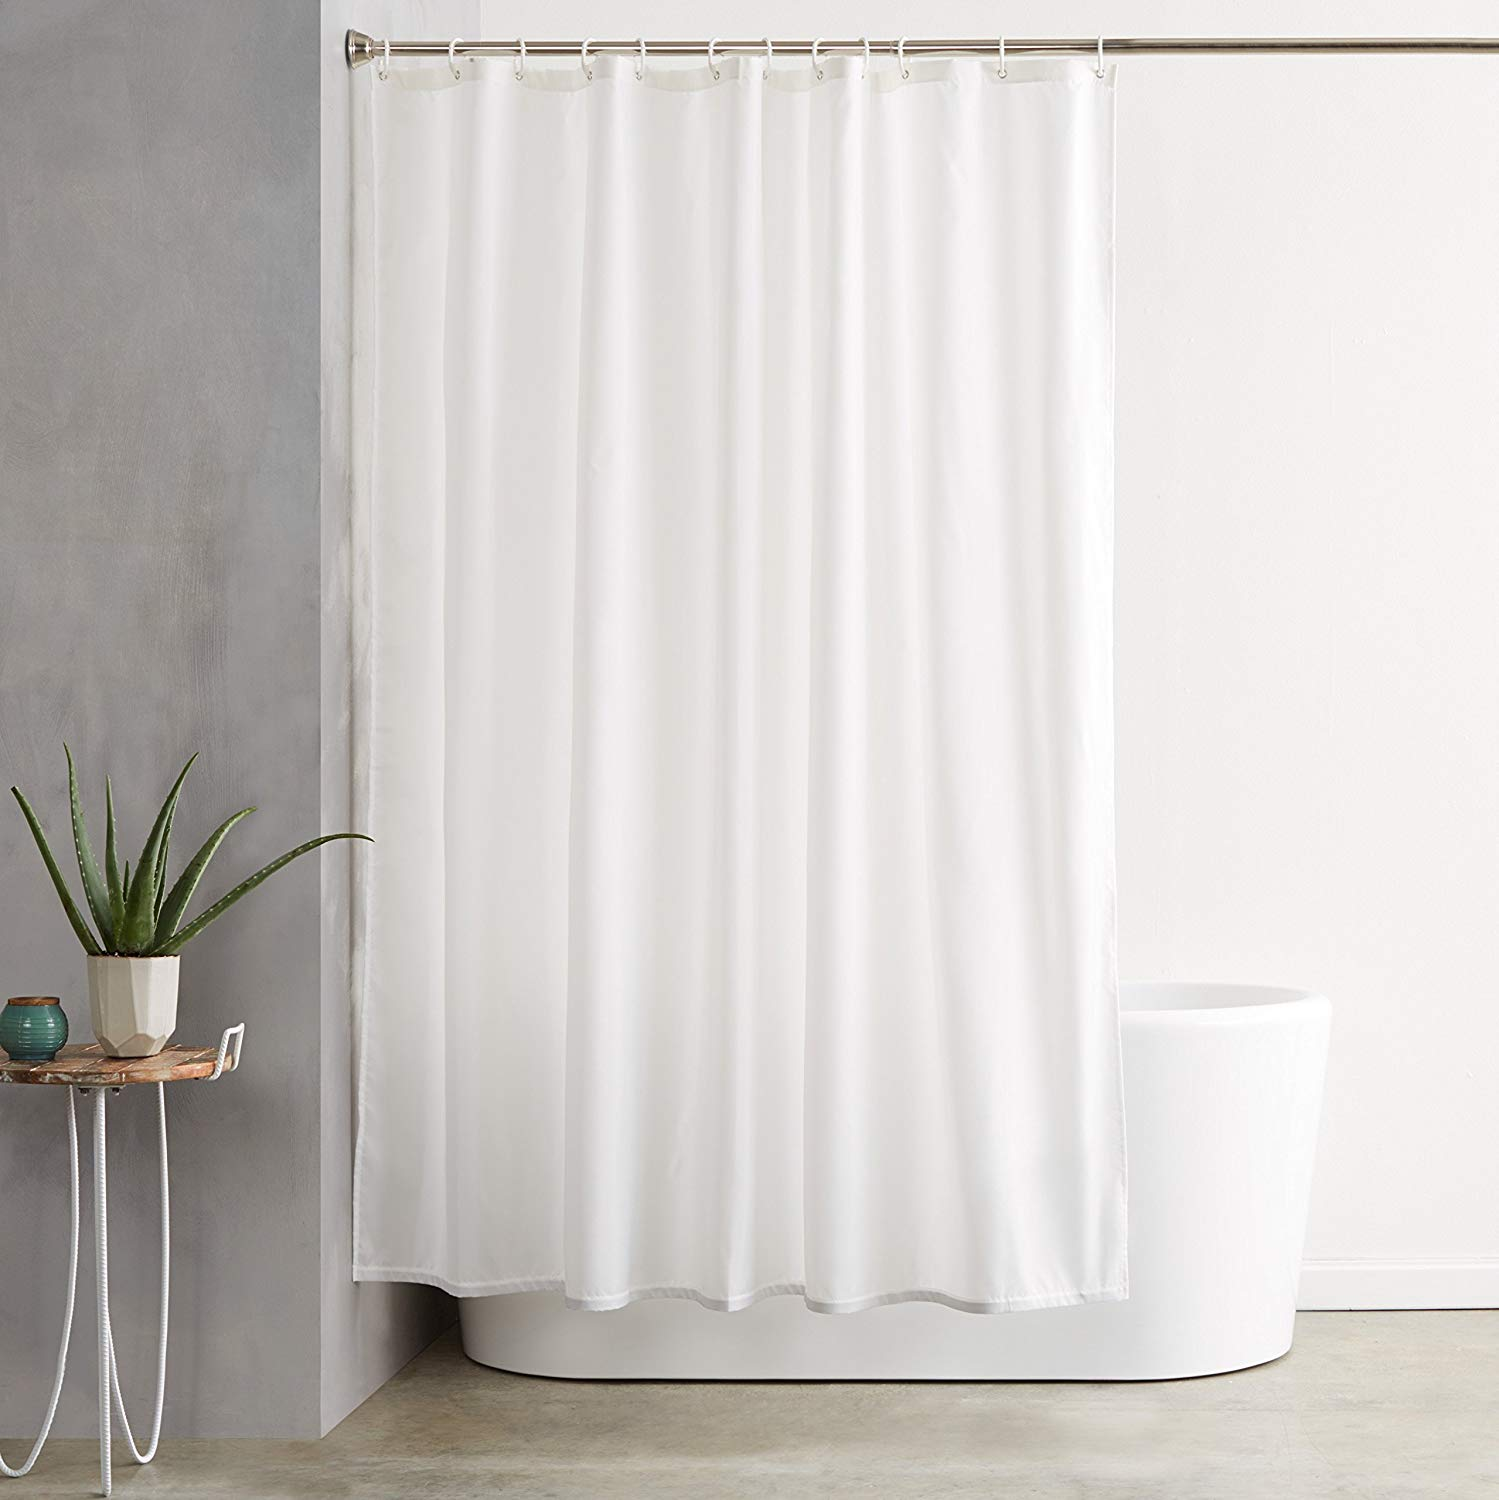 Traveller Location: AmazonBasics Shower Curtain with Hooks (Treated to Resist  Deterioration by Mildew) - 72 x 72 inches, White: Home & Kitchen